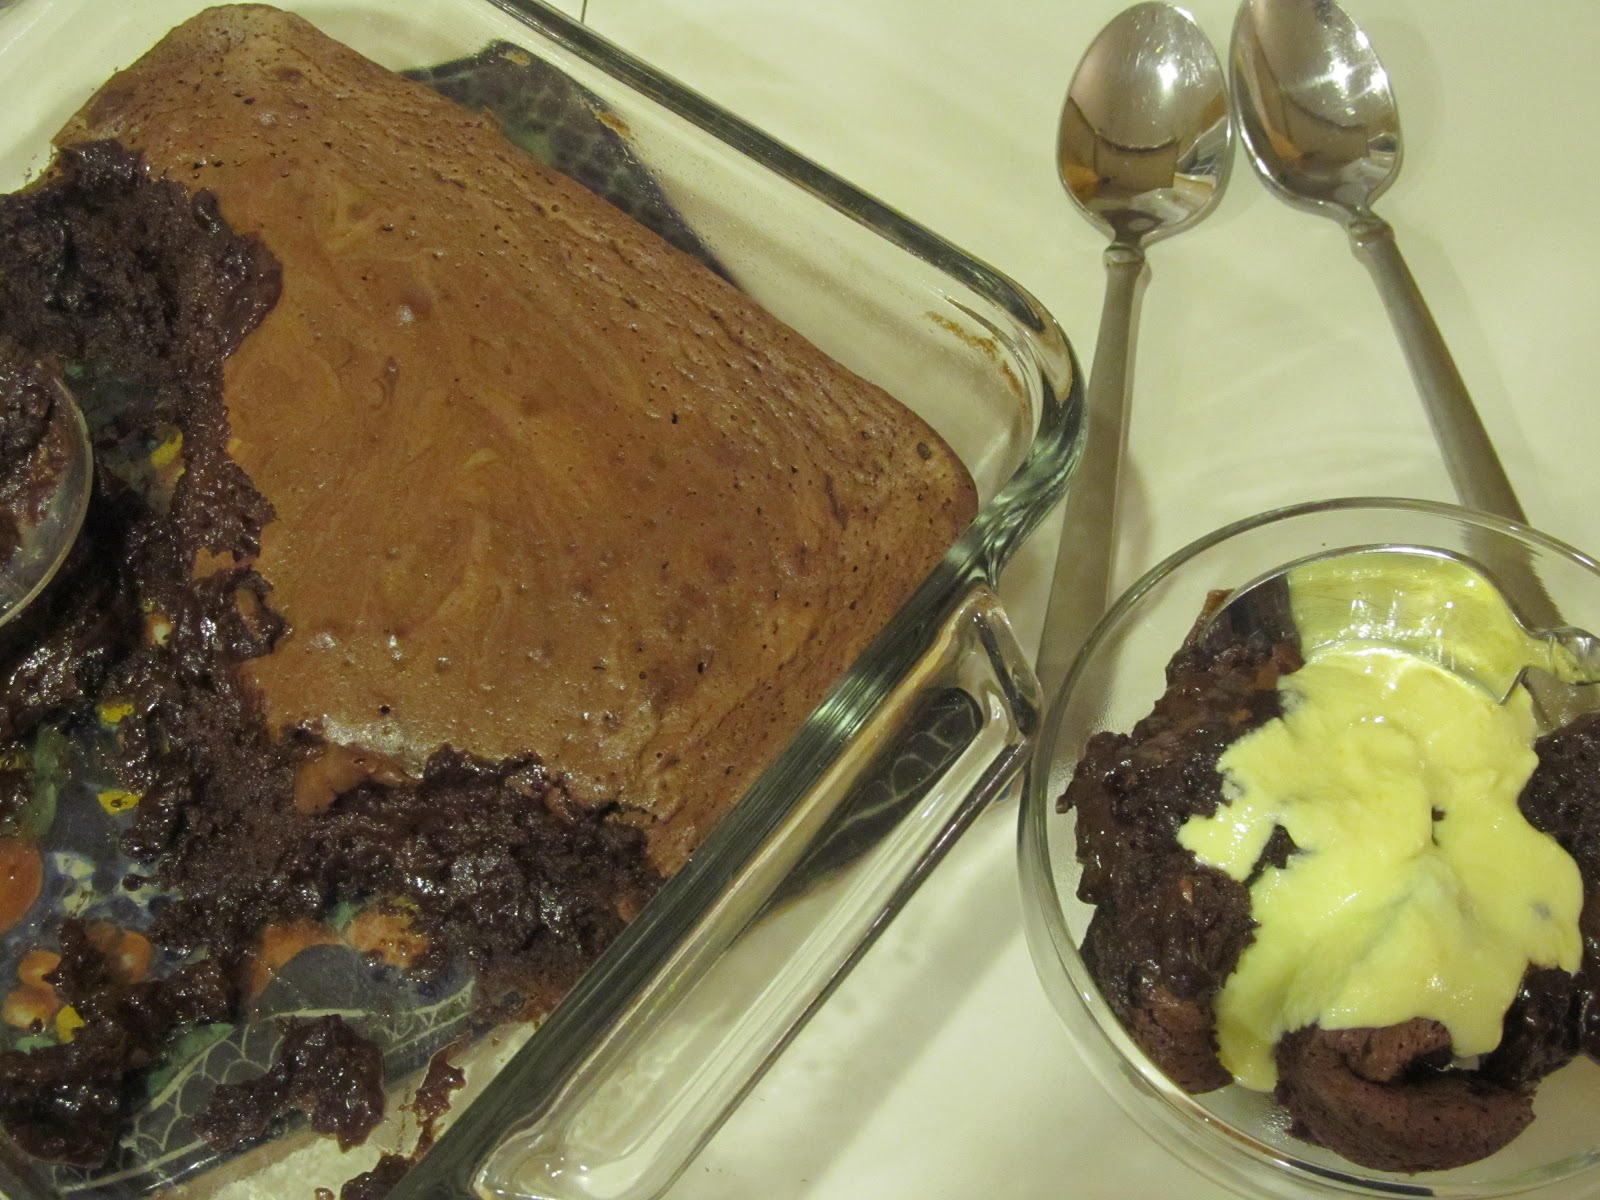 ... Cooking and Gardening: Soft Chocolate Cake with Orange Crème Anglaise